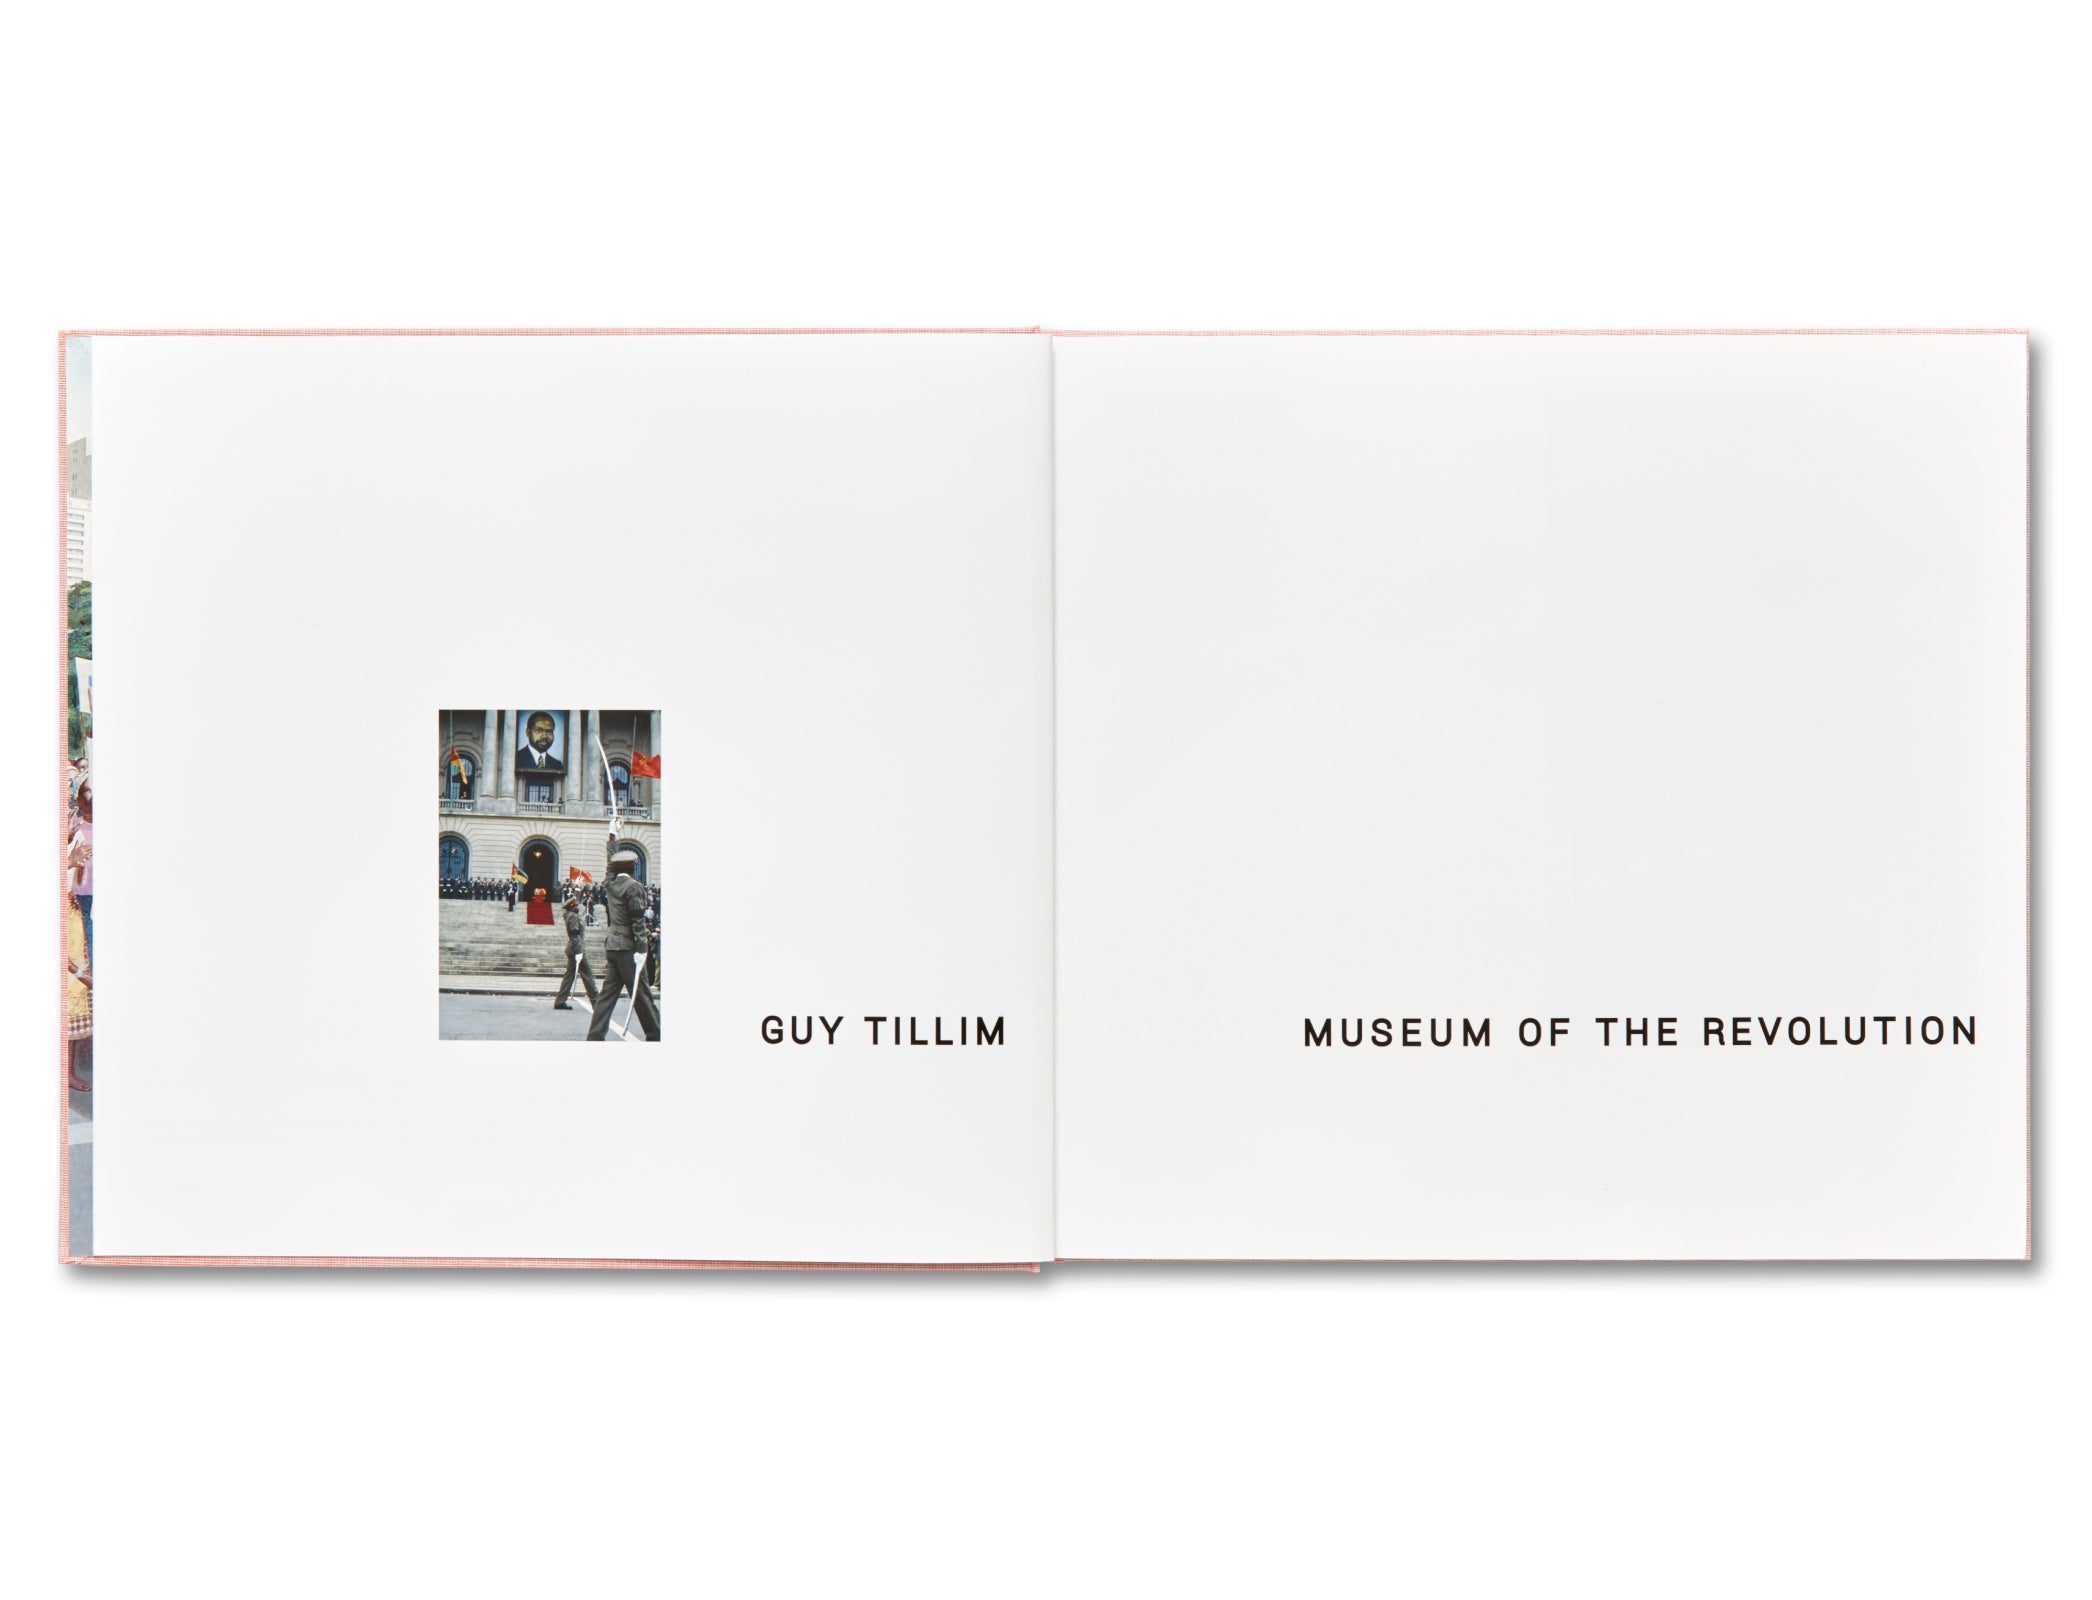 MUSEUM OF REVOLUTION by Guy Tillim